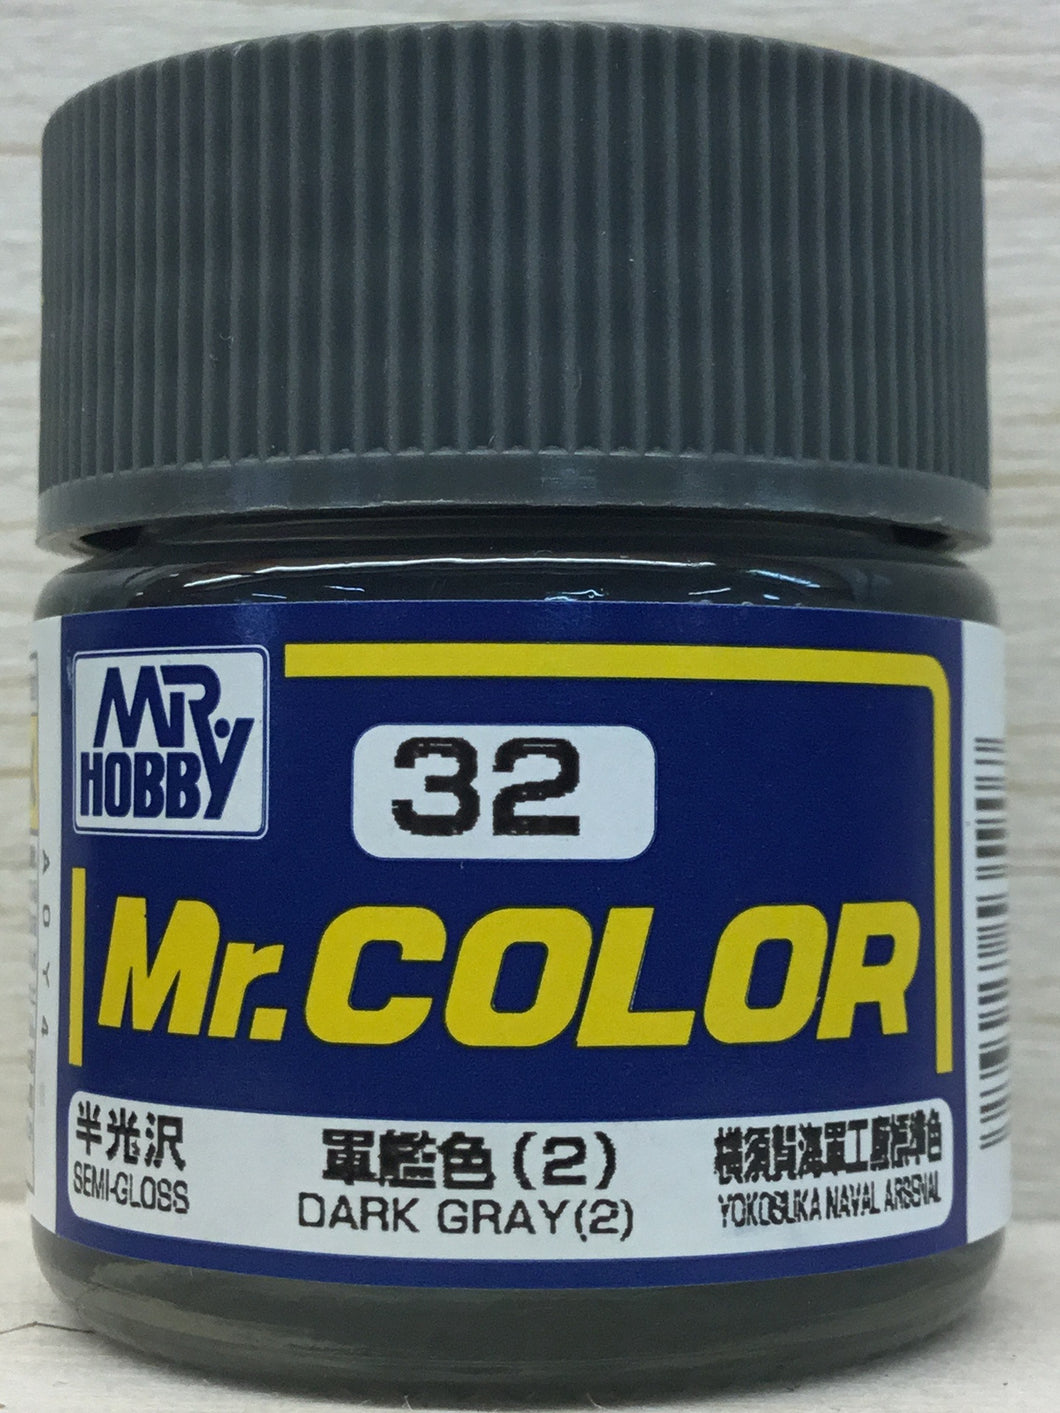 GUNZE MR COLOR C32 SEMI GLOSS DARK GRAY 2